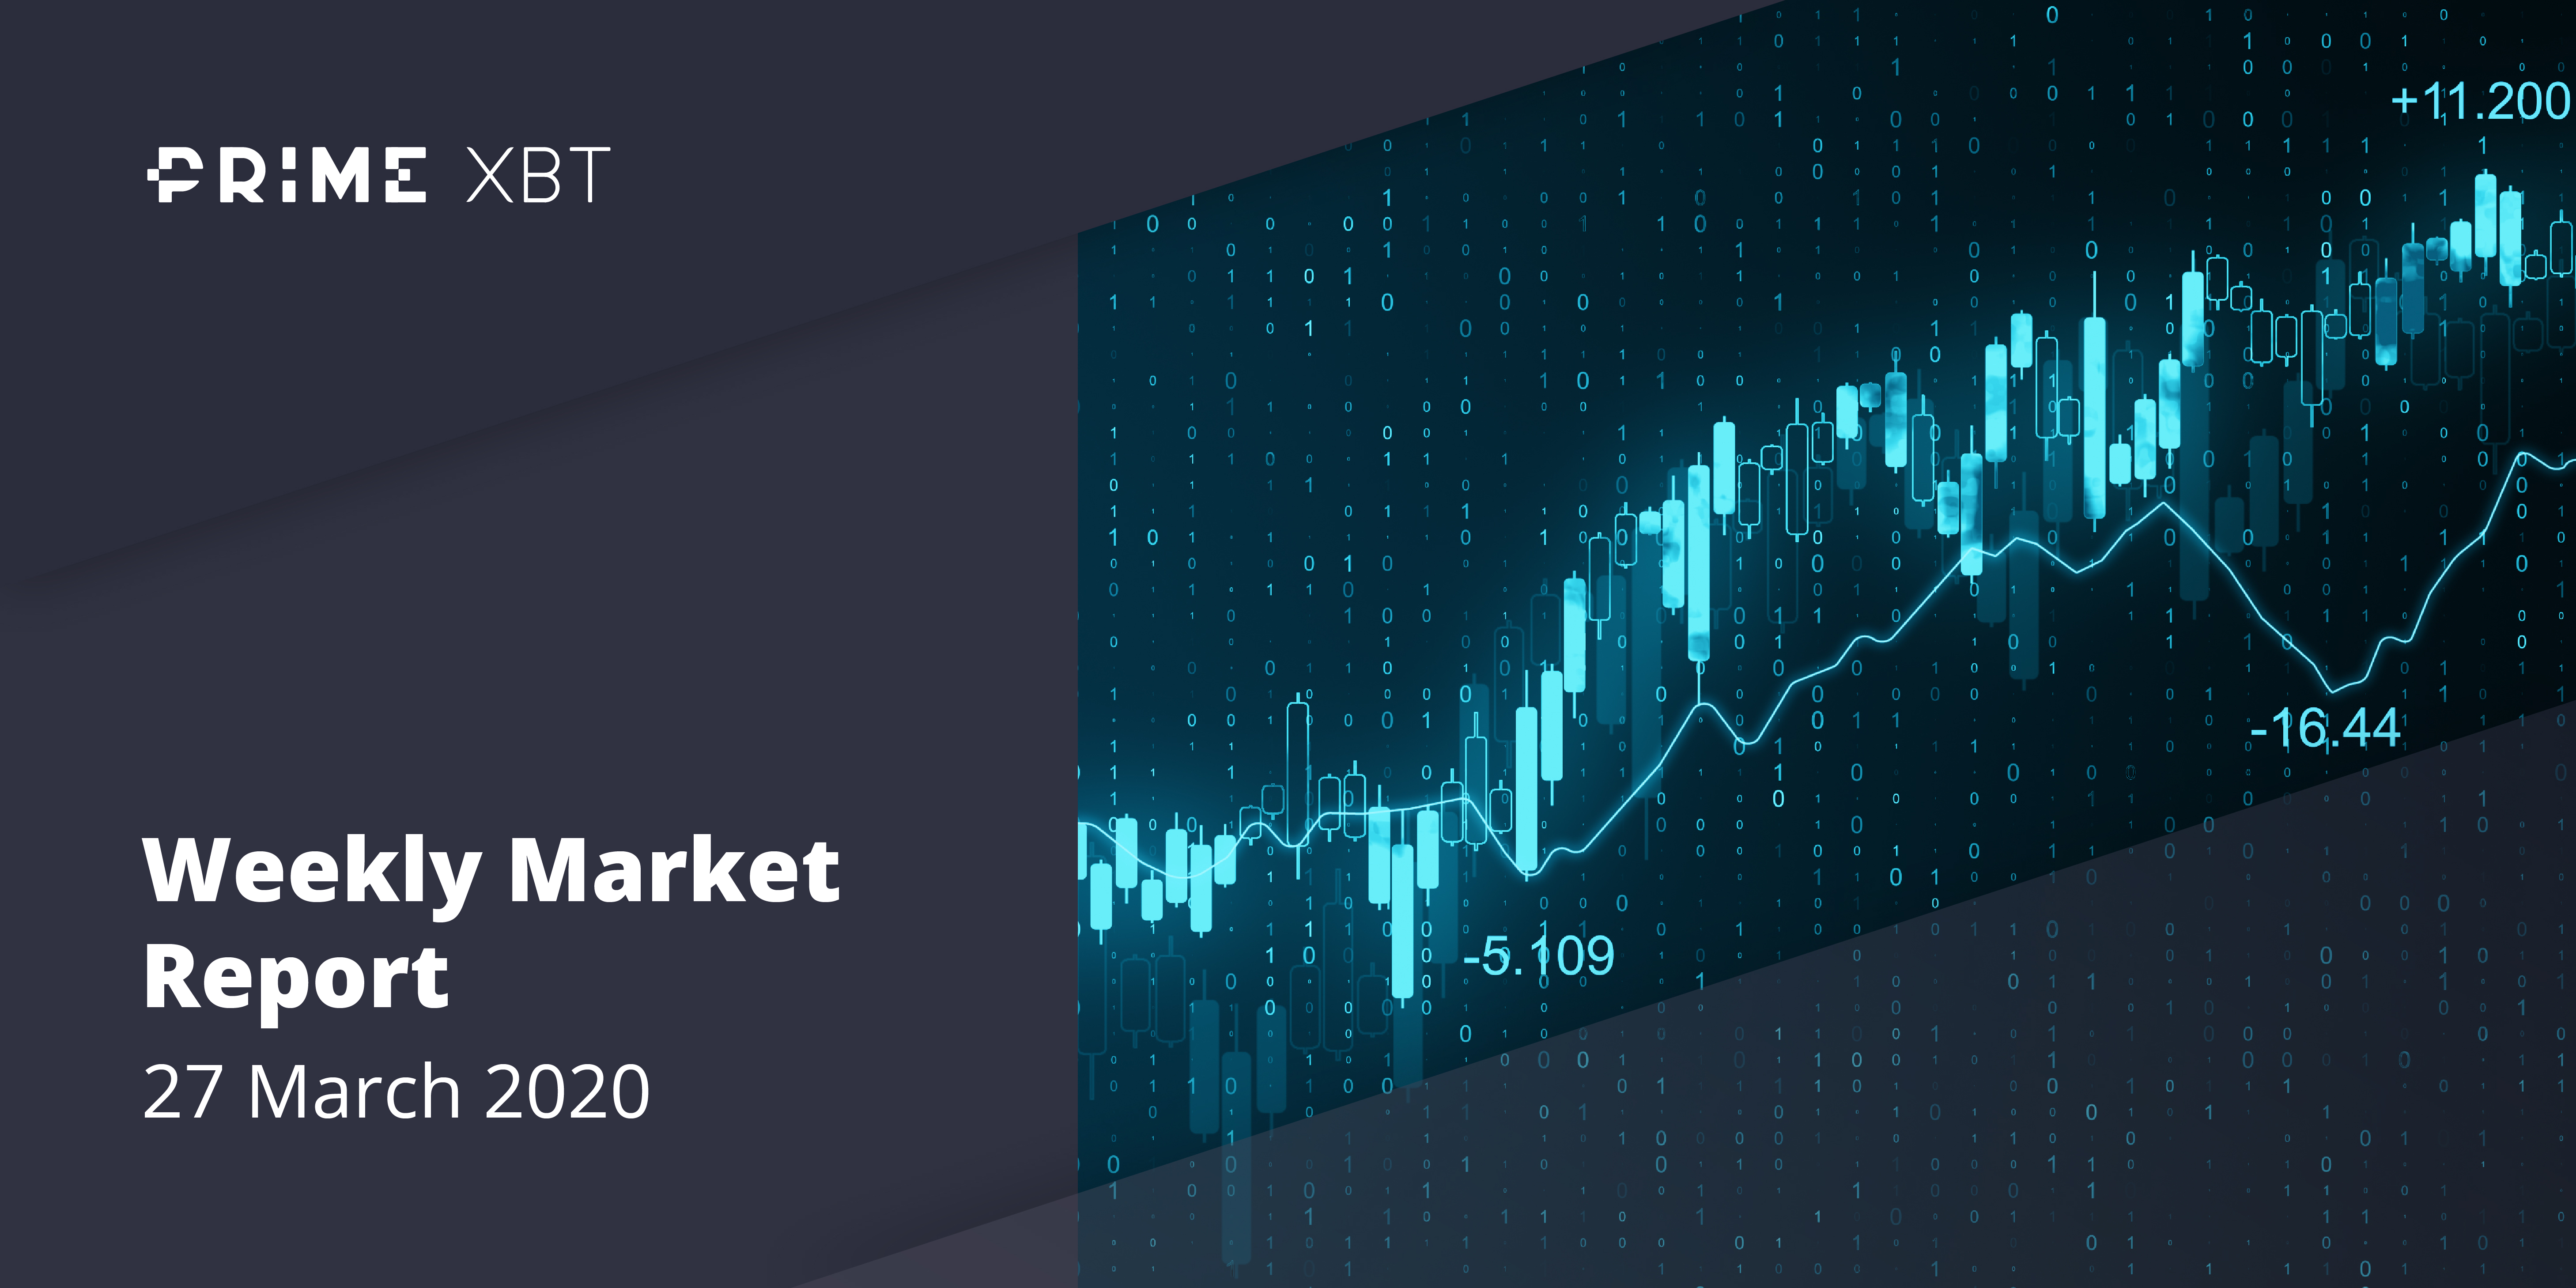 Crypto Market Report: Bitcoin Market Volatility as Mining Difficulty Drops, Certain Altcoins Regain Lost Positions - 27.03.20